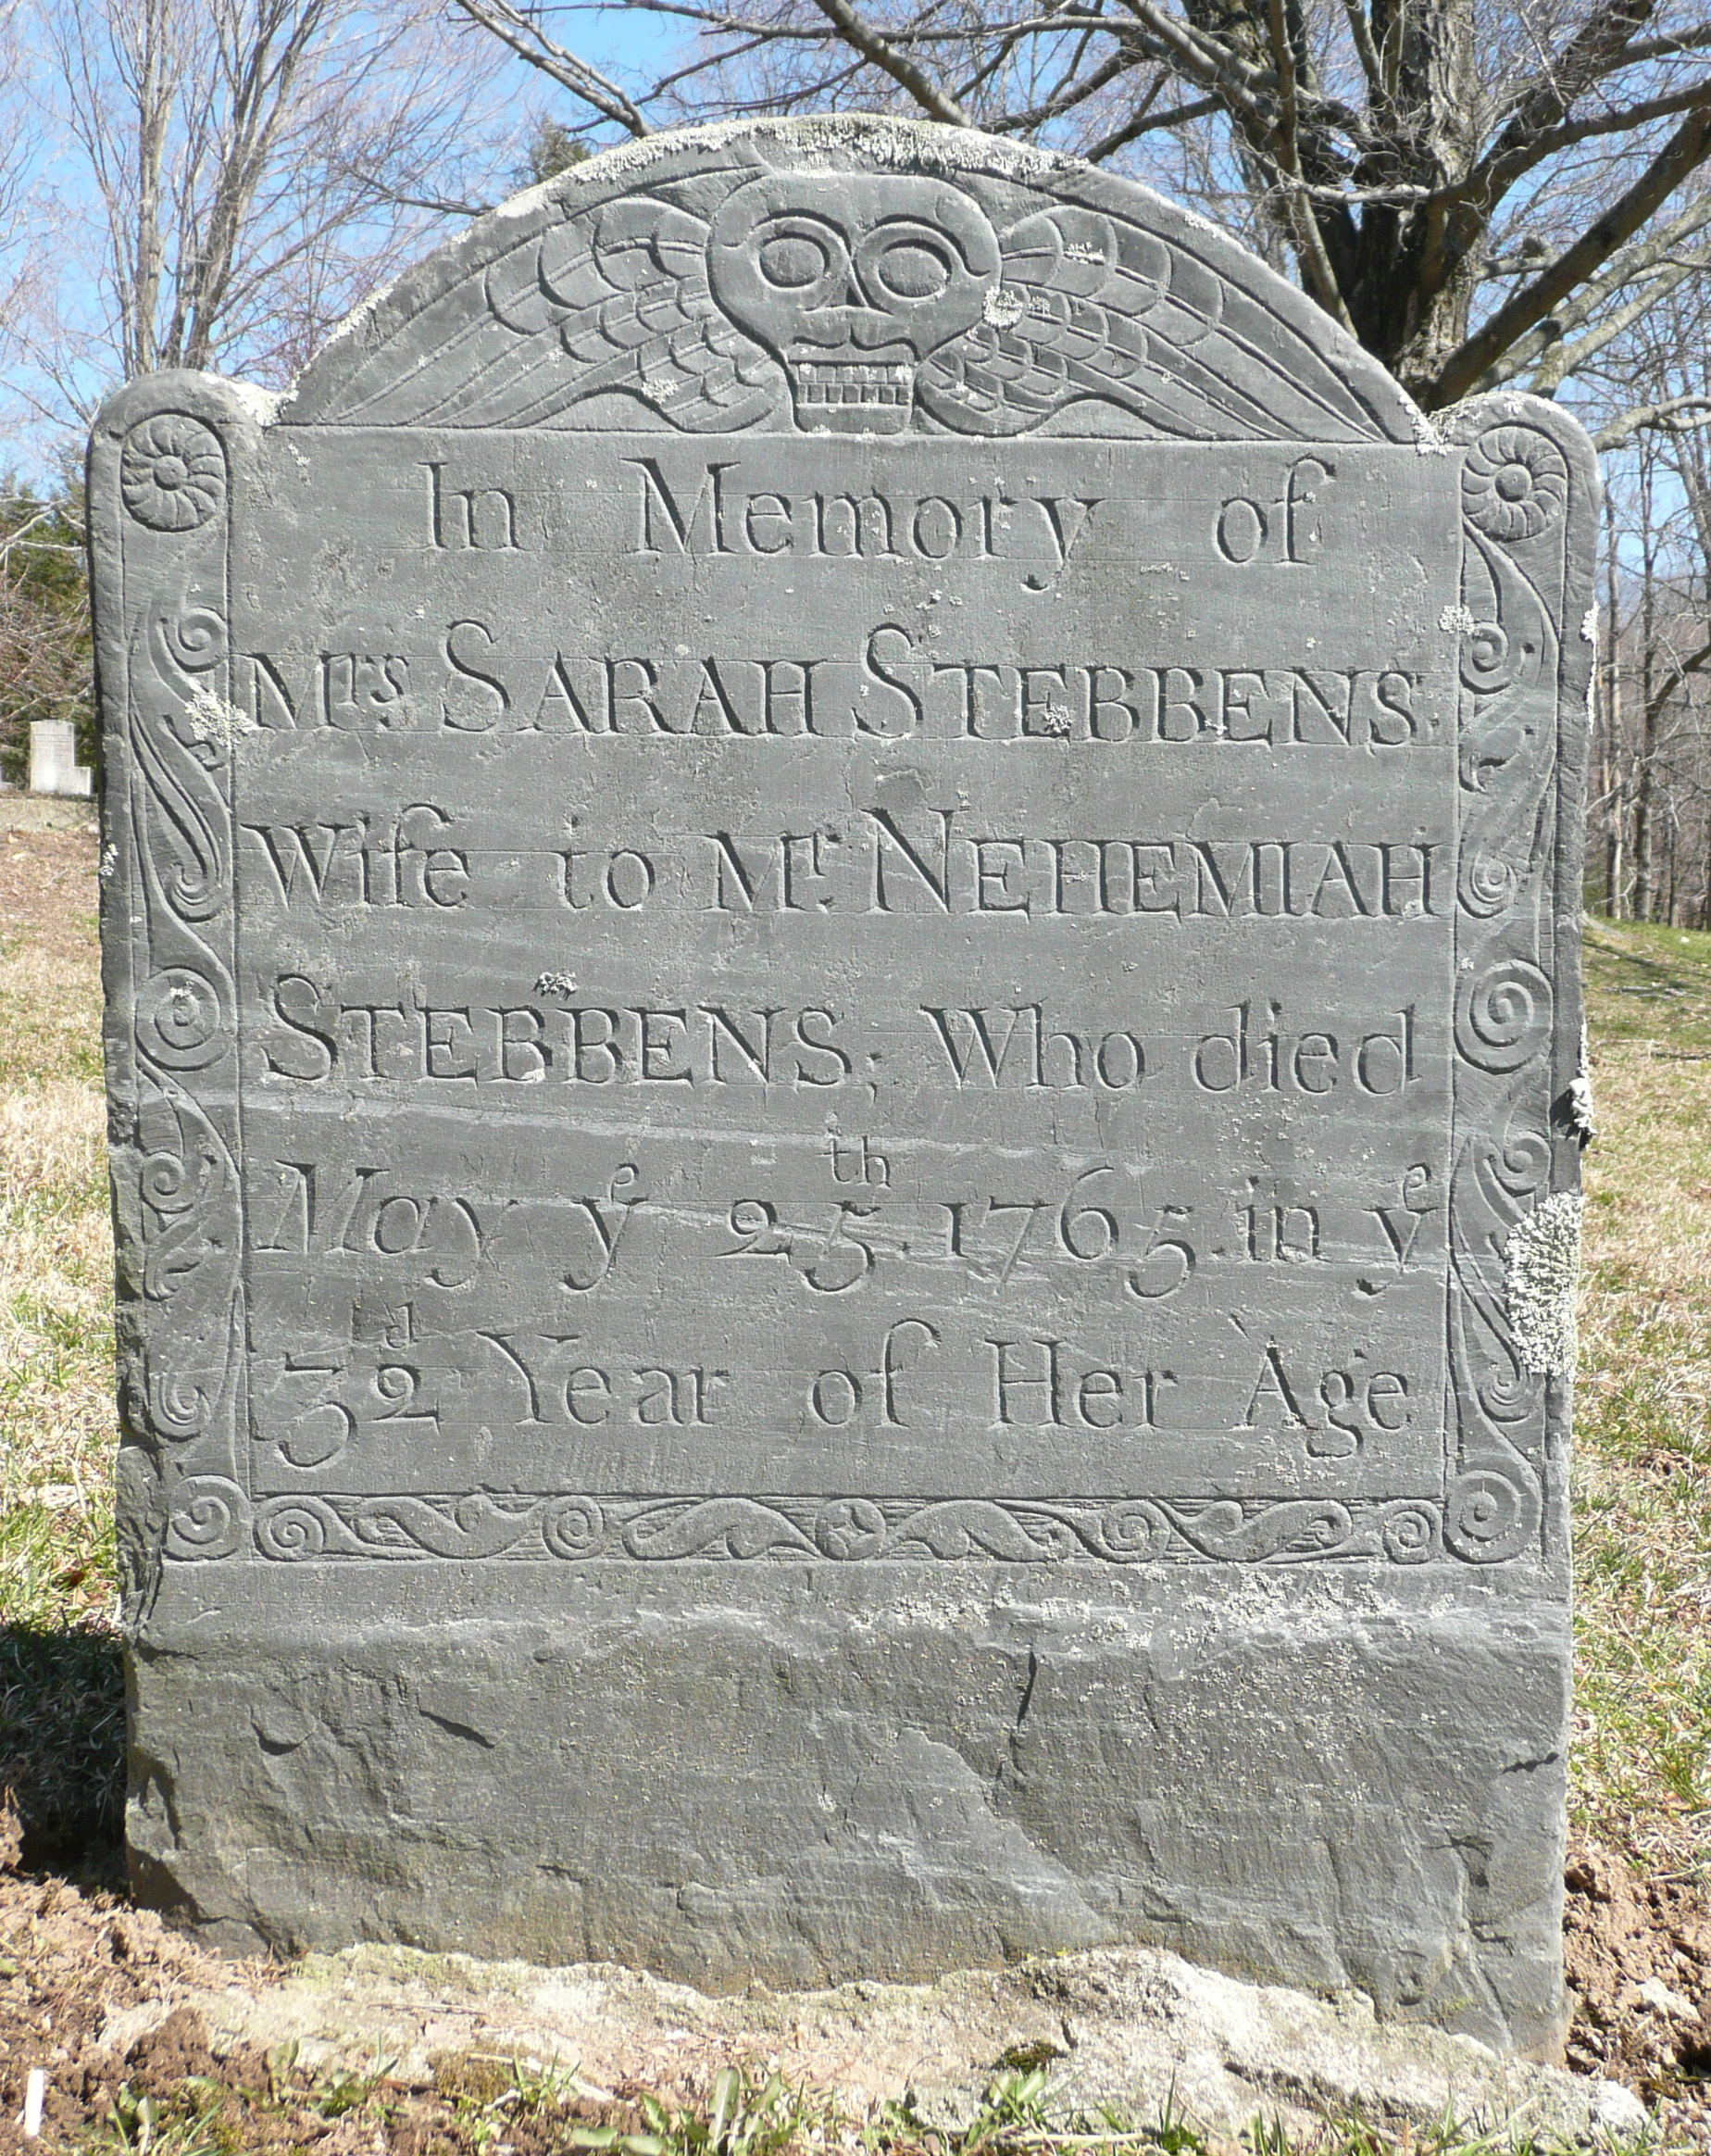 Tombstone of Sarah Stebbens.